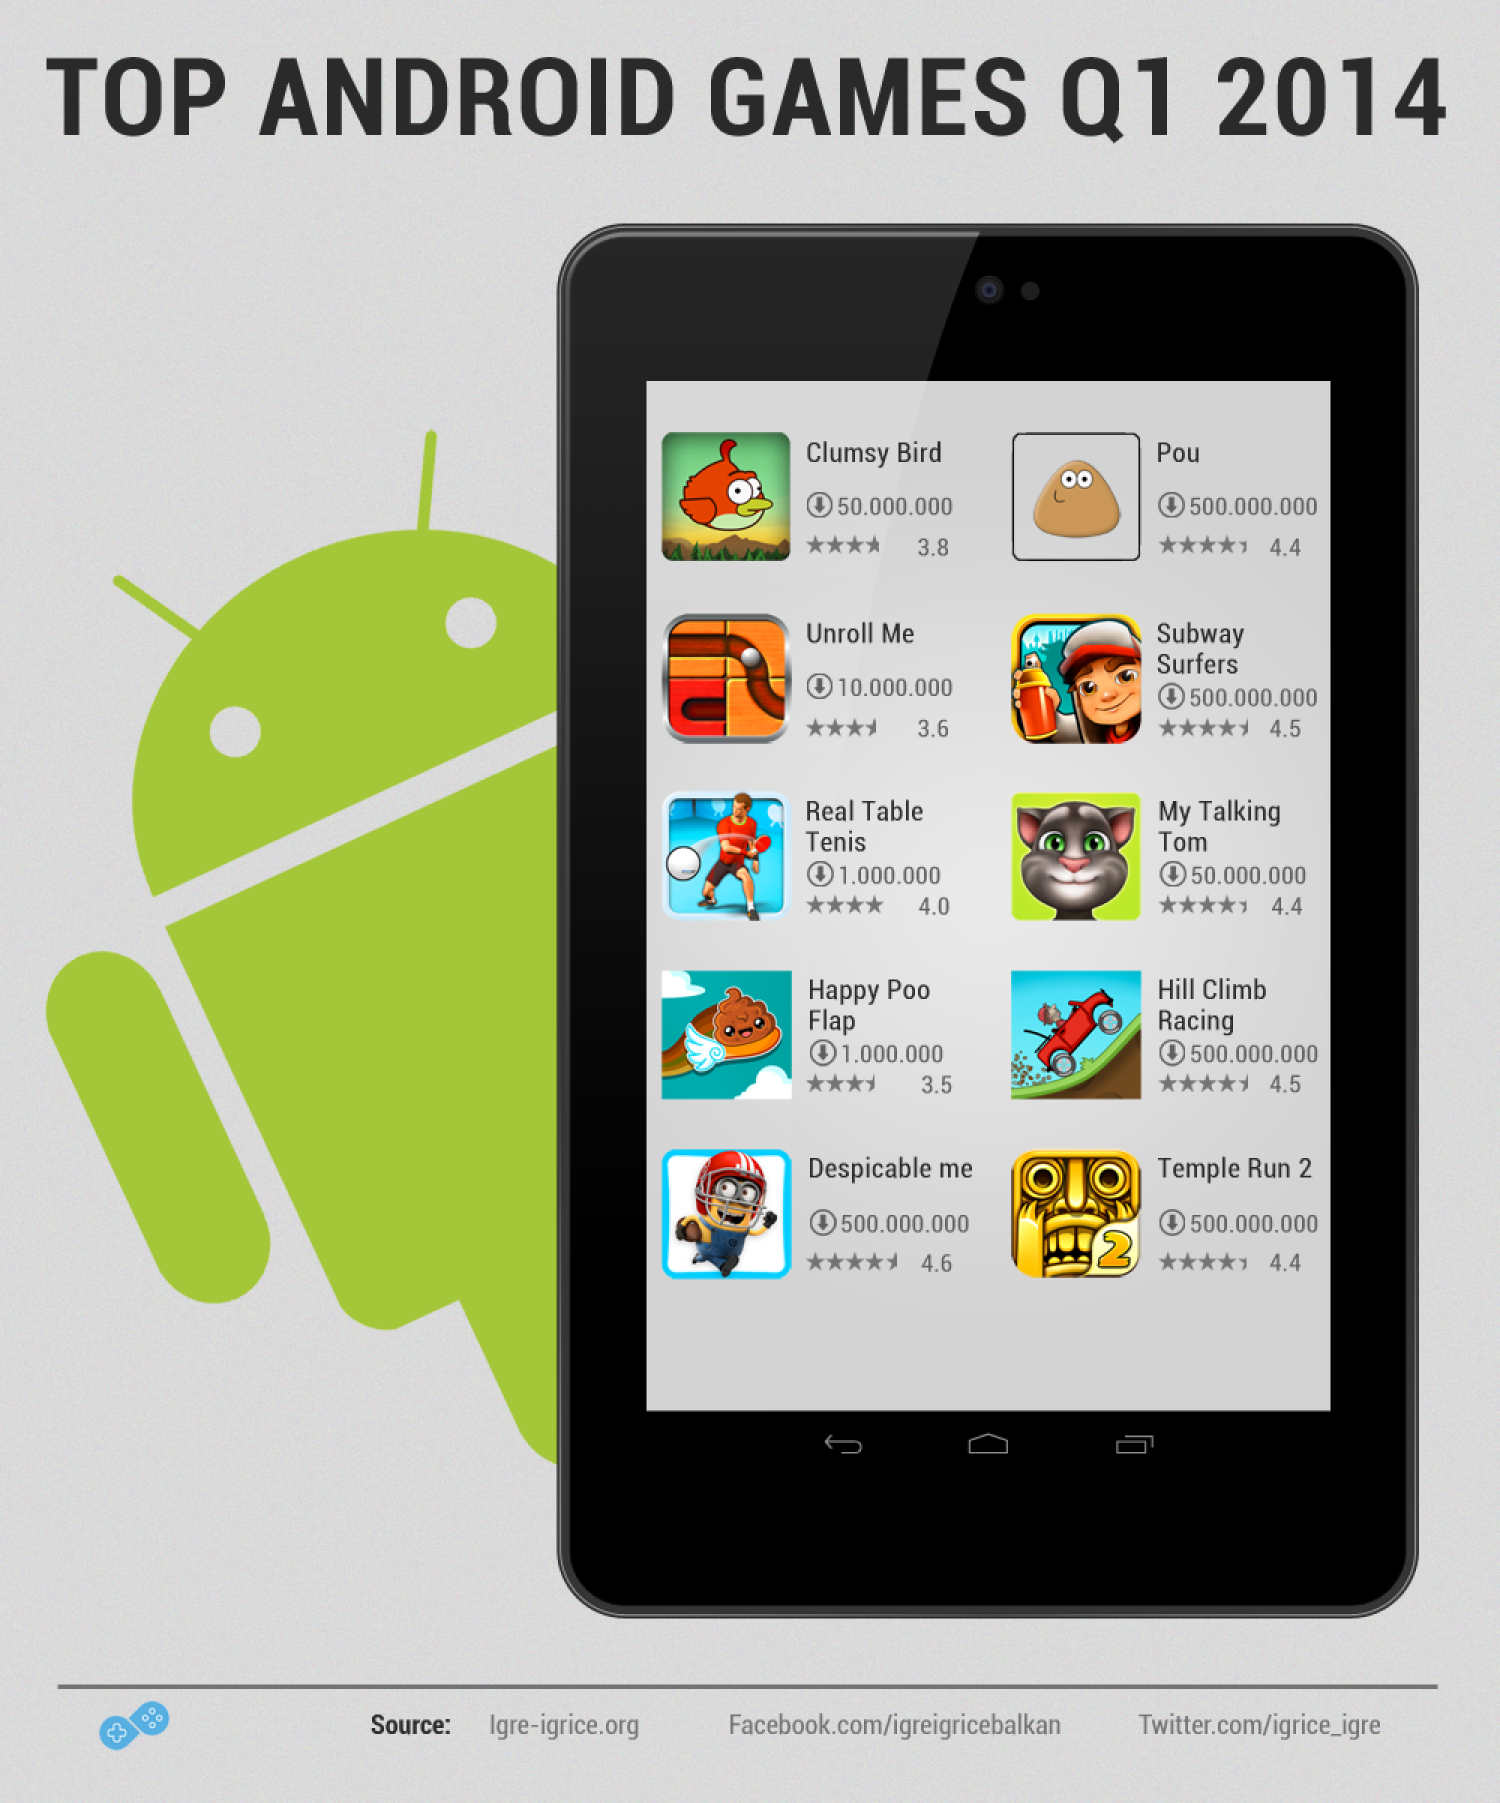 Top android games Q1 2014 Infographic